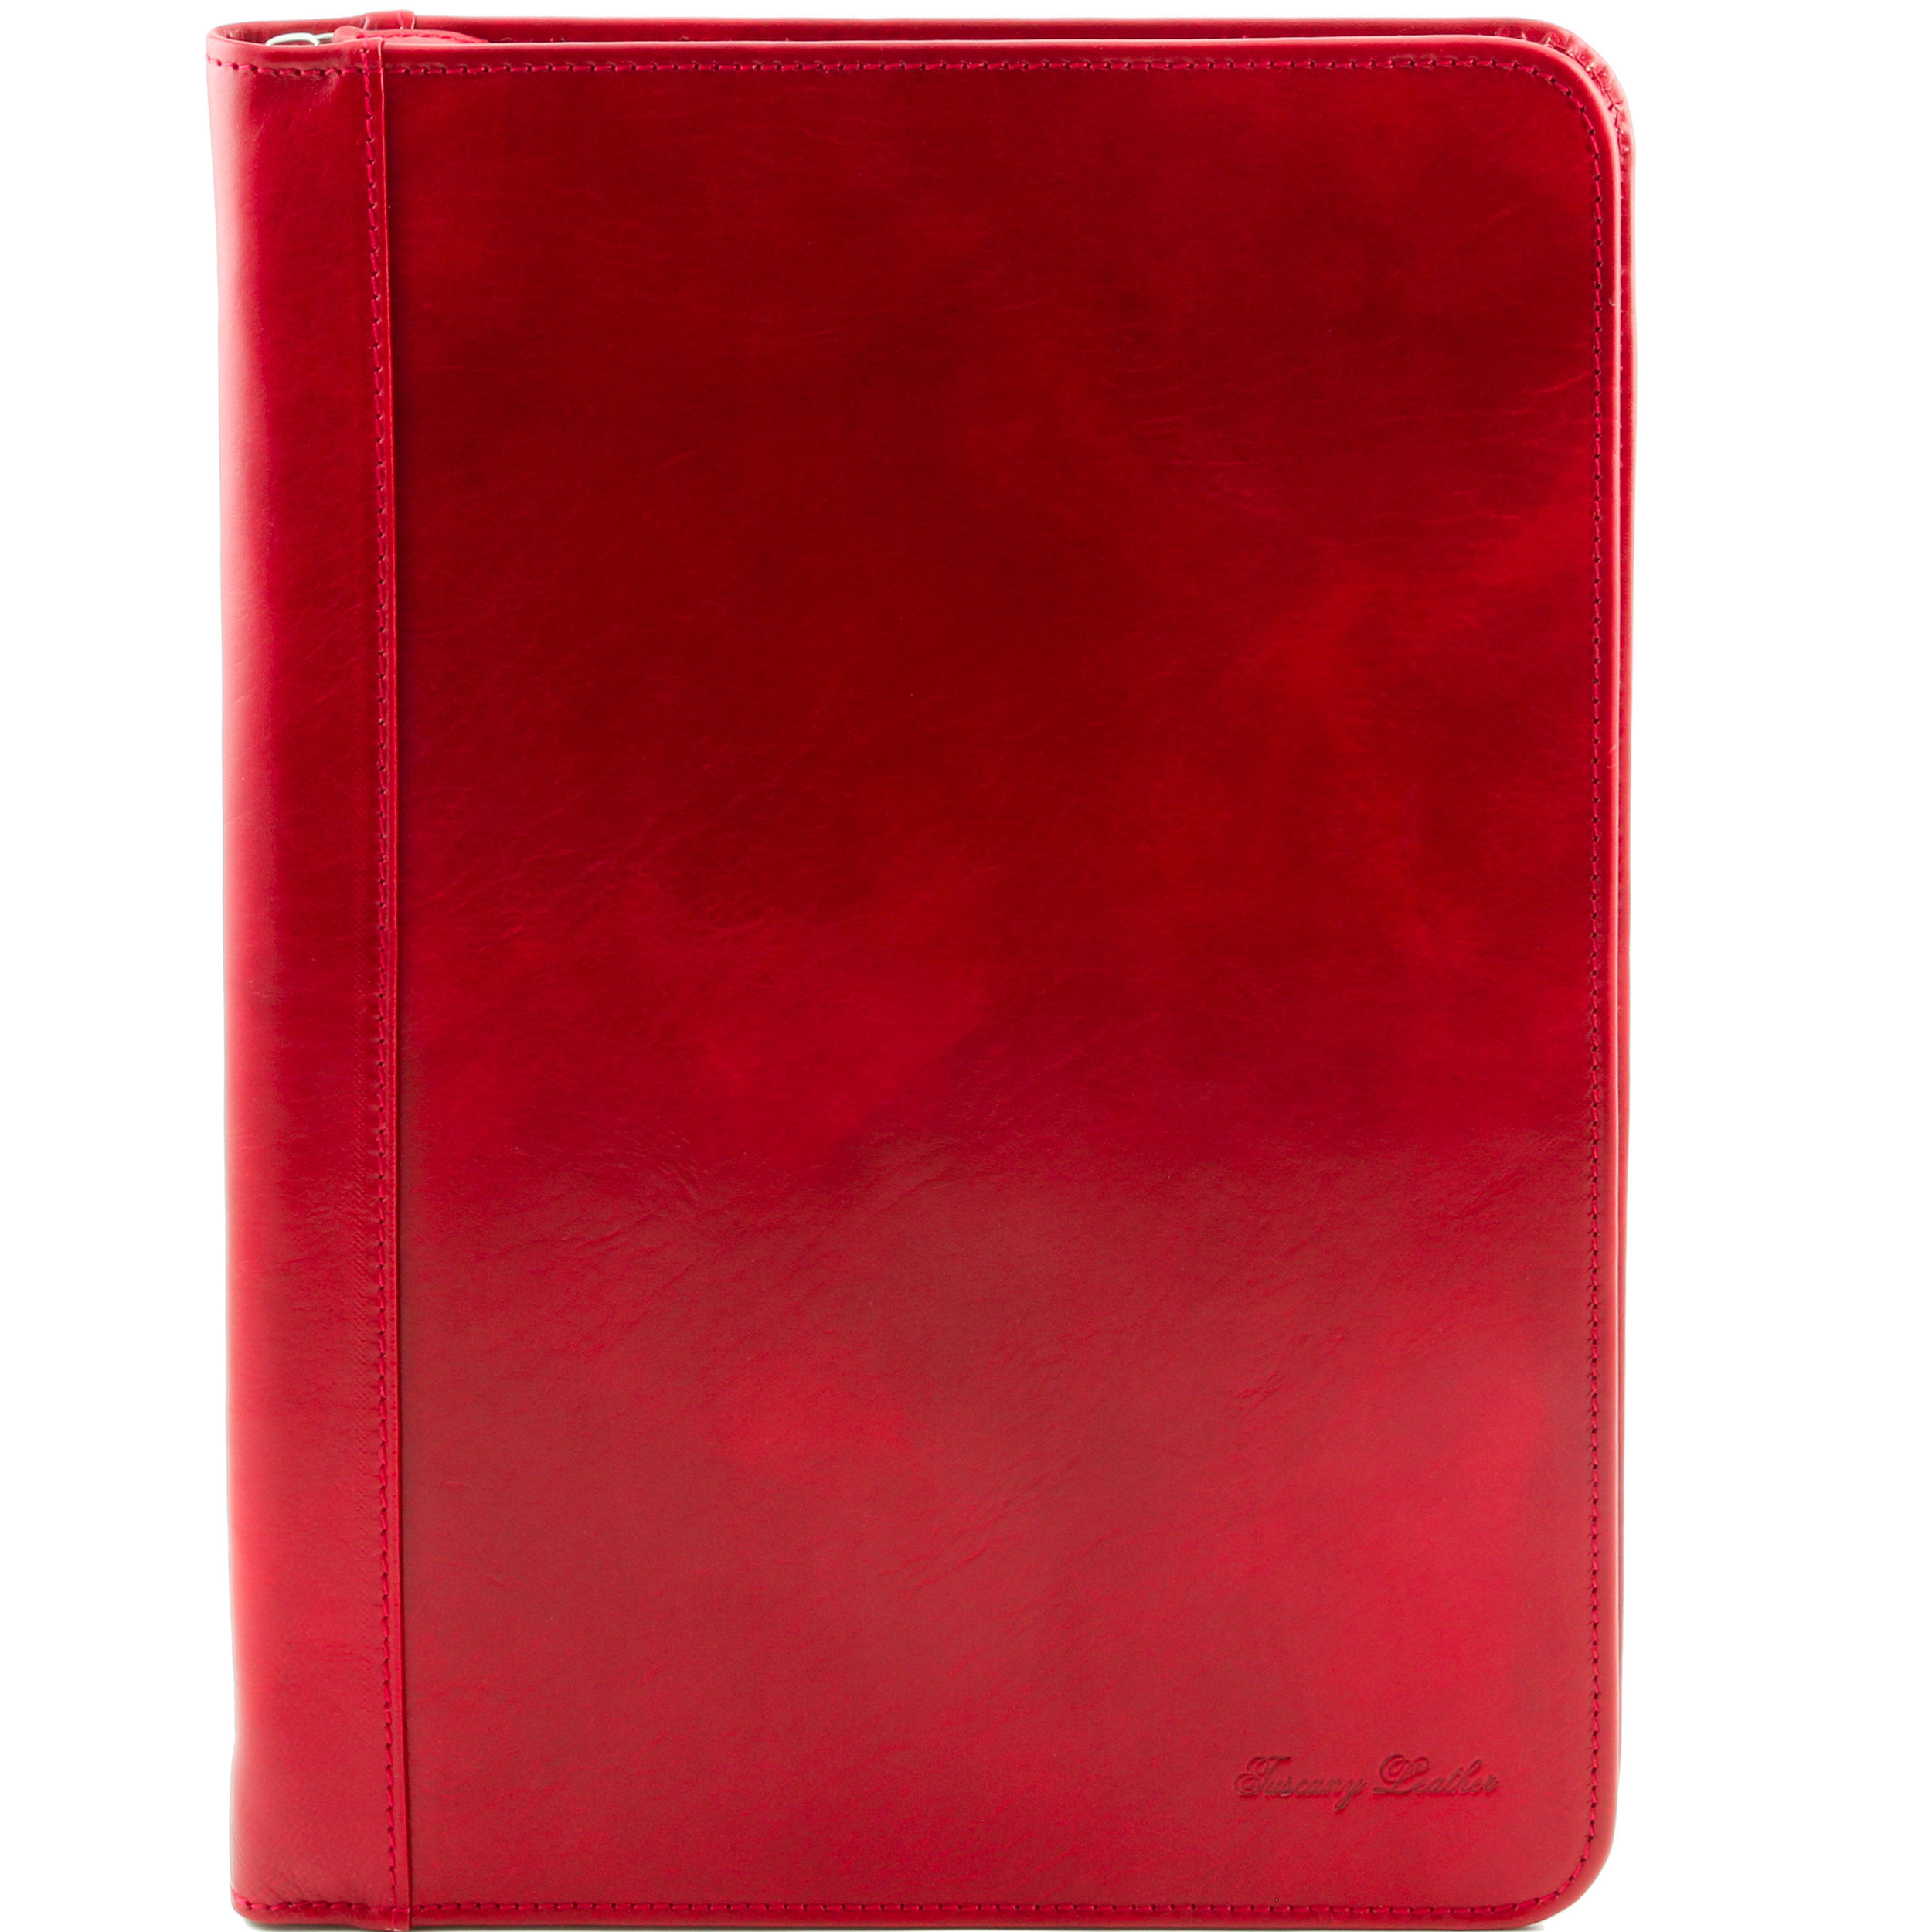 Porte-documents cuir - Rouge - Homme